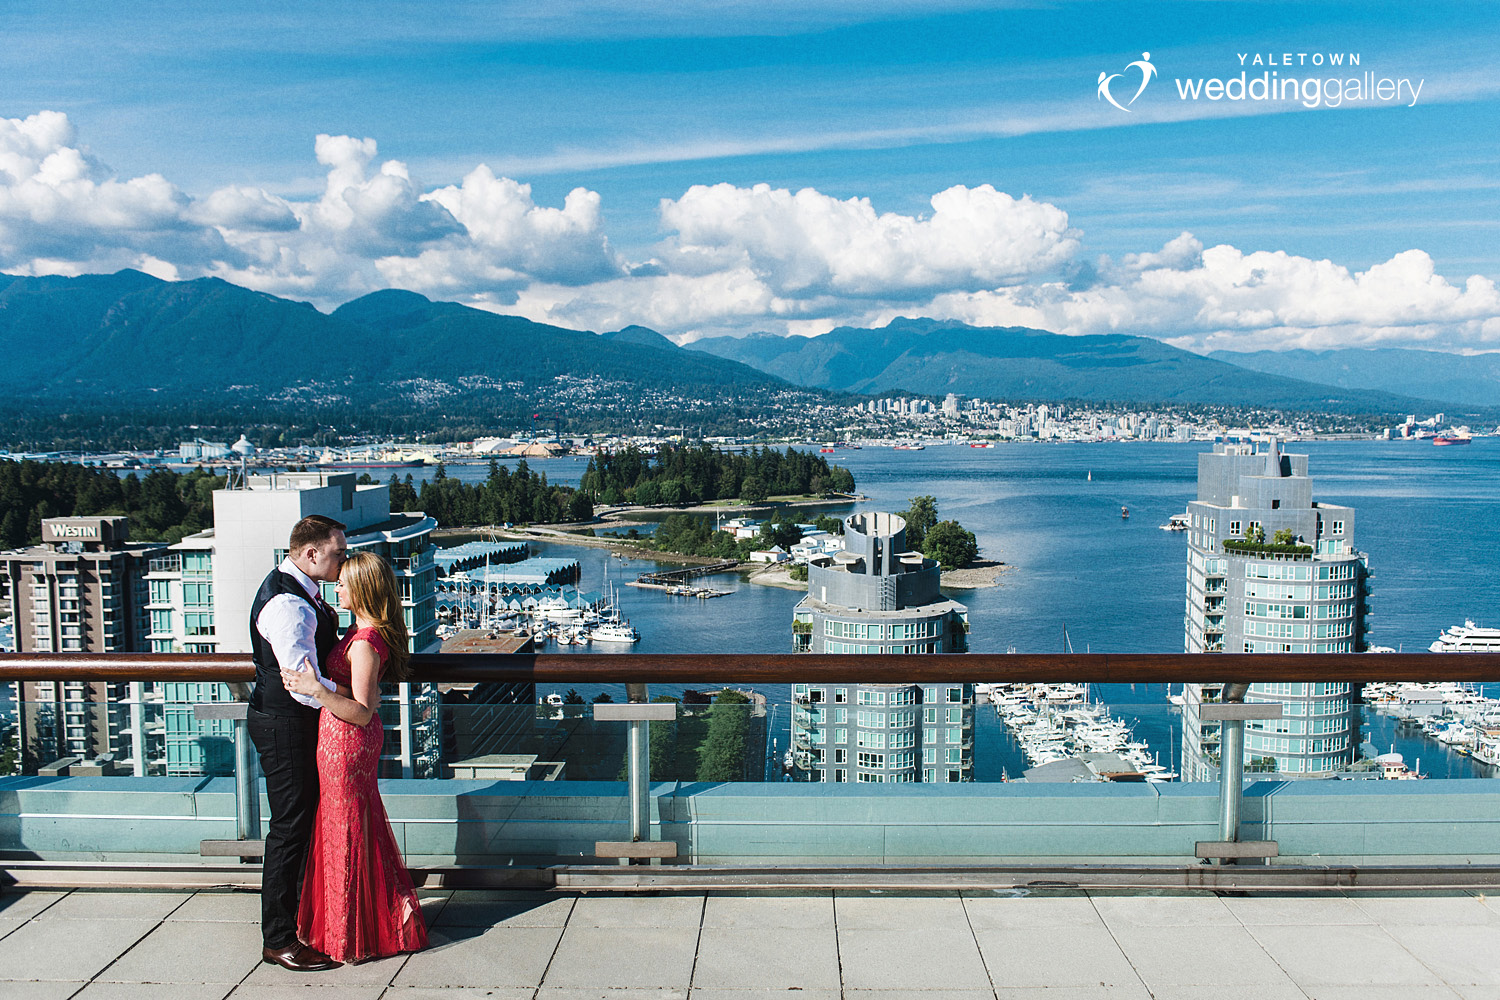 Yaletown-Wedding-Gallery-Vancouver-Engagement-Session-photo